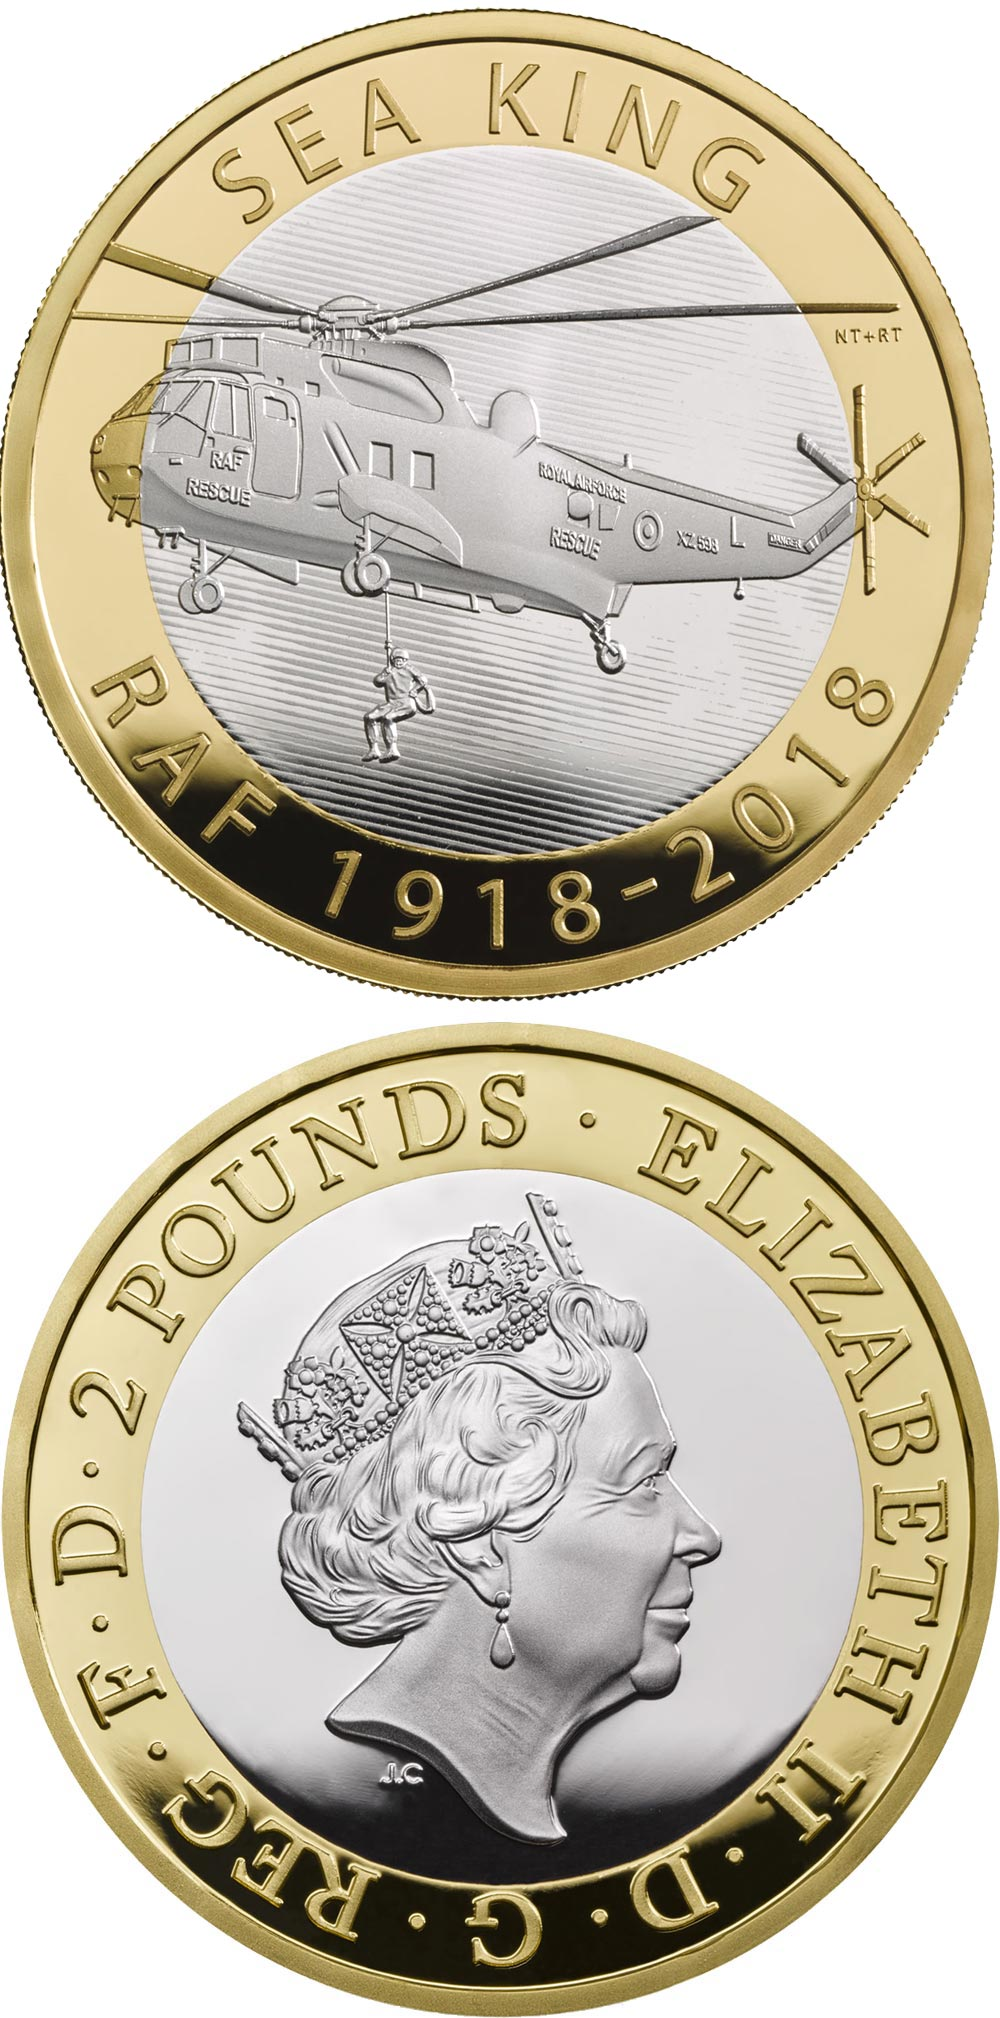 Image of 2 pounds coin – RAF Centenary Sea King | United Kingdom 2018.  The Bimetal: CuNi, nordic gold coin is of Proof, BU quality.